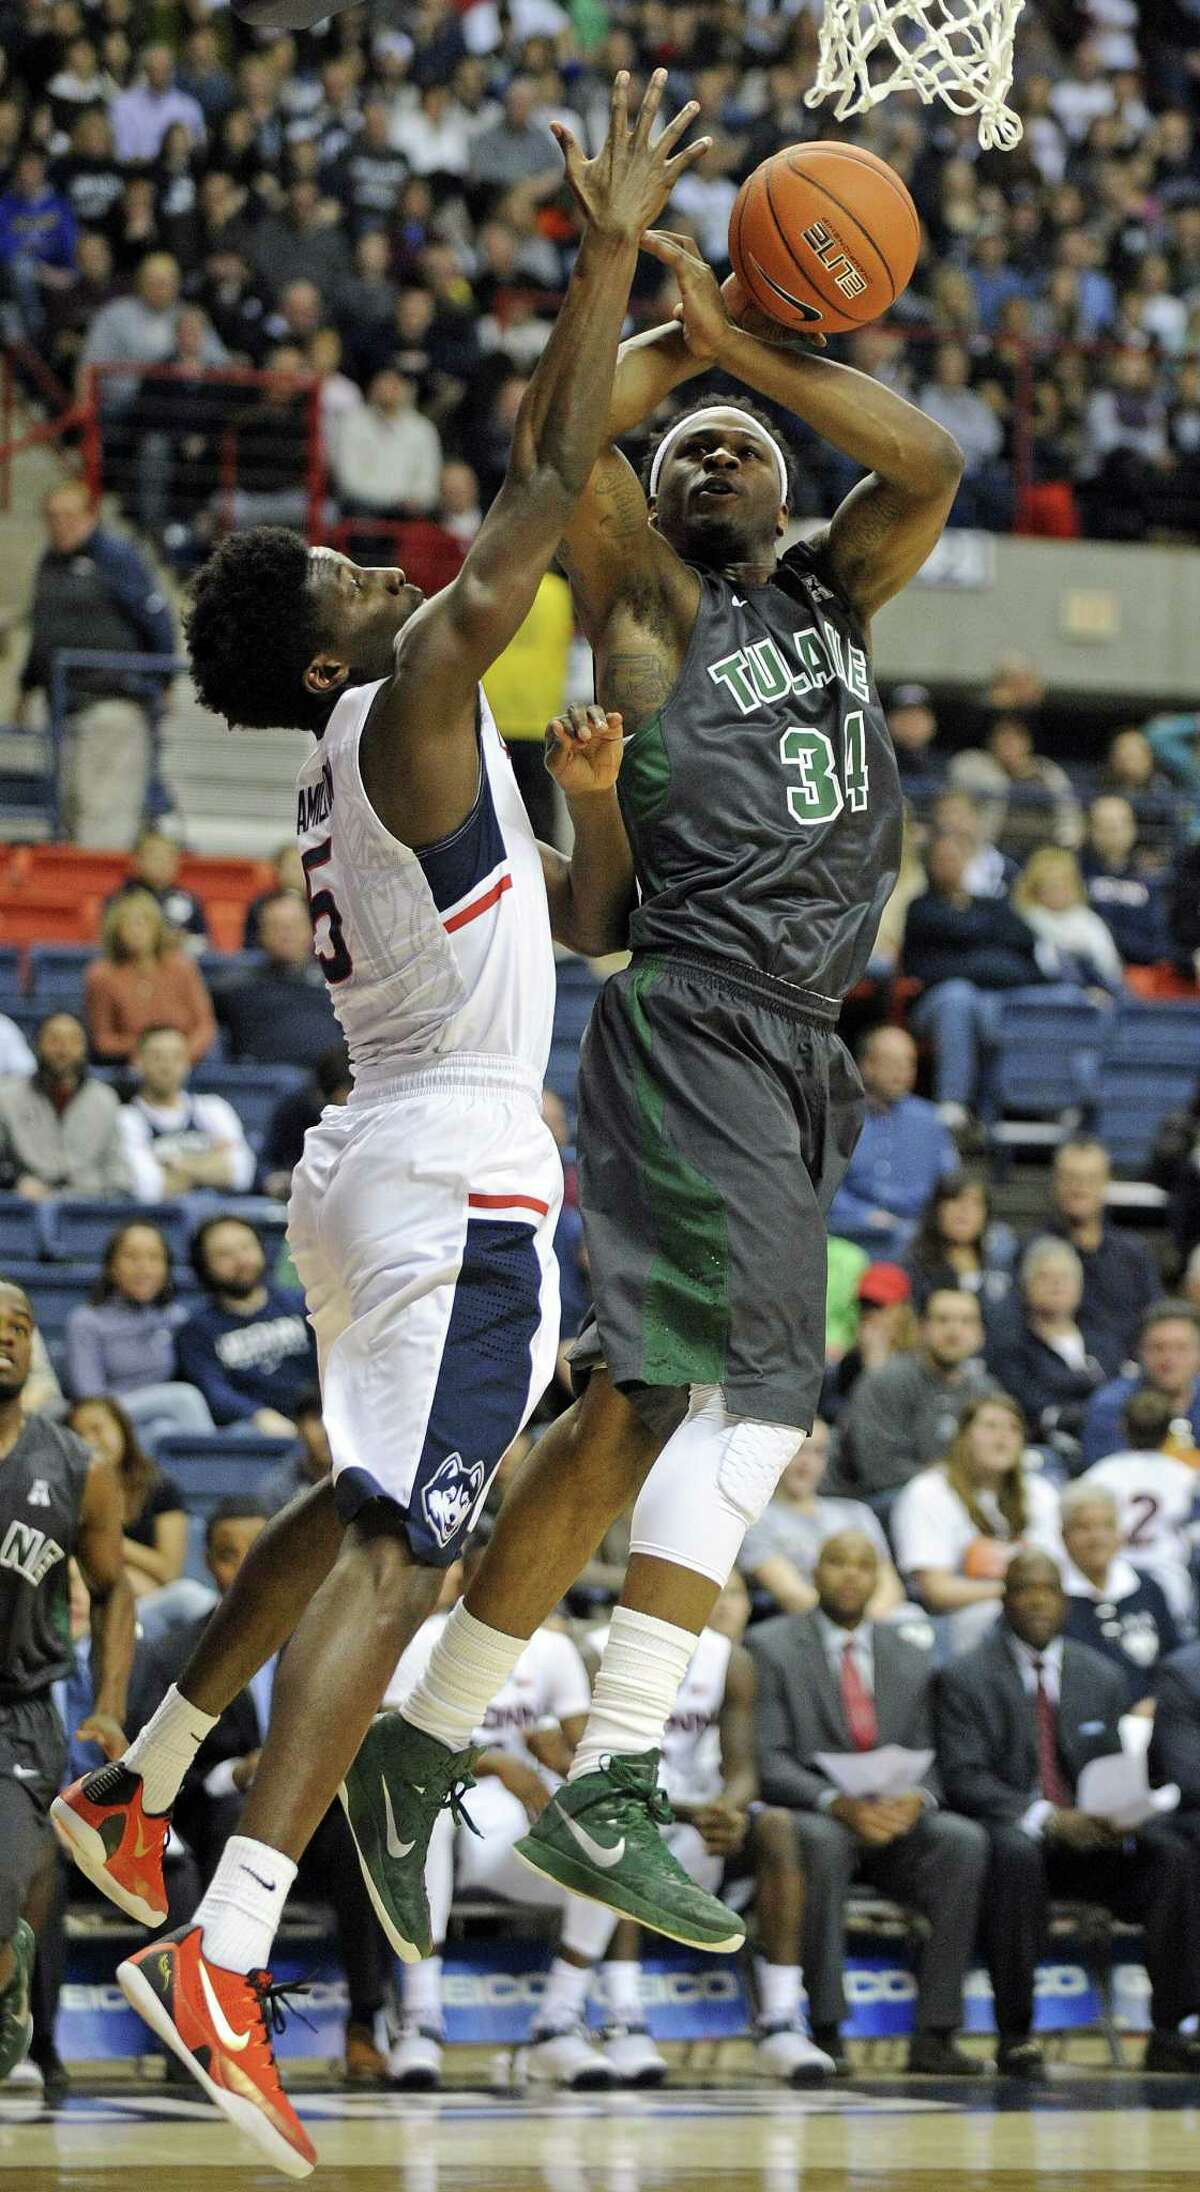 Tulane's Tre Drye, right, is fouled by UConn's Daniel Hamilton during the first half on Sunday.